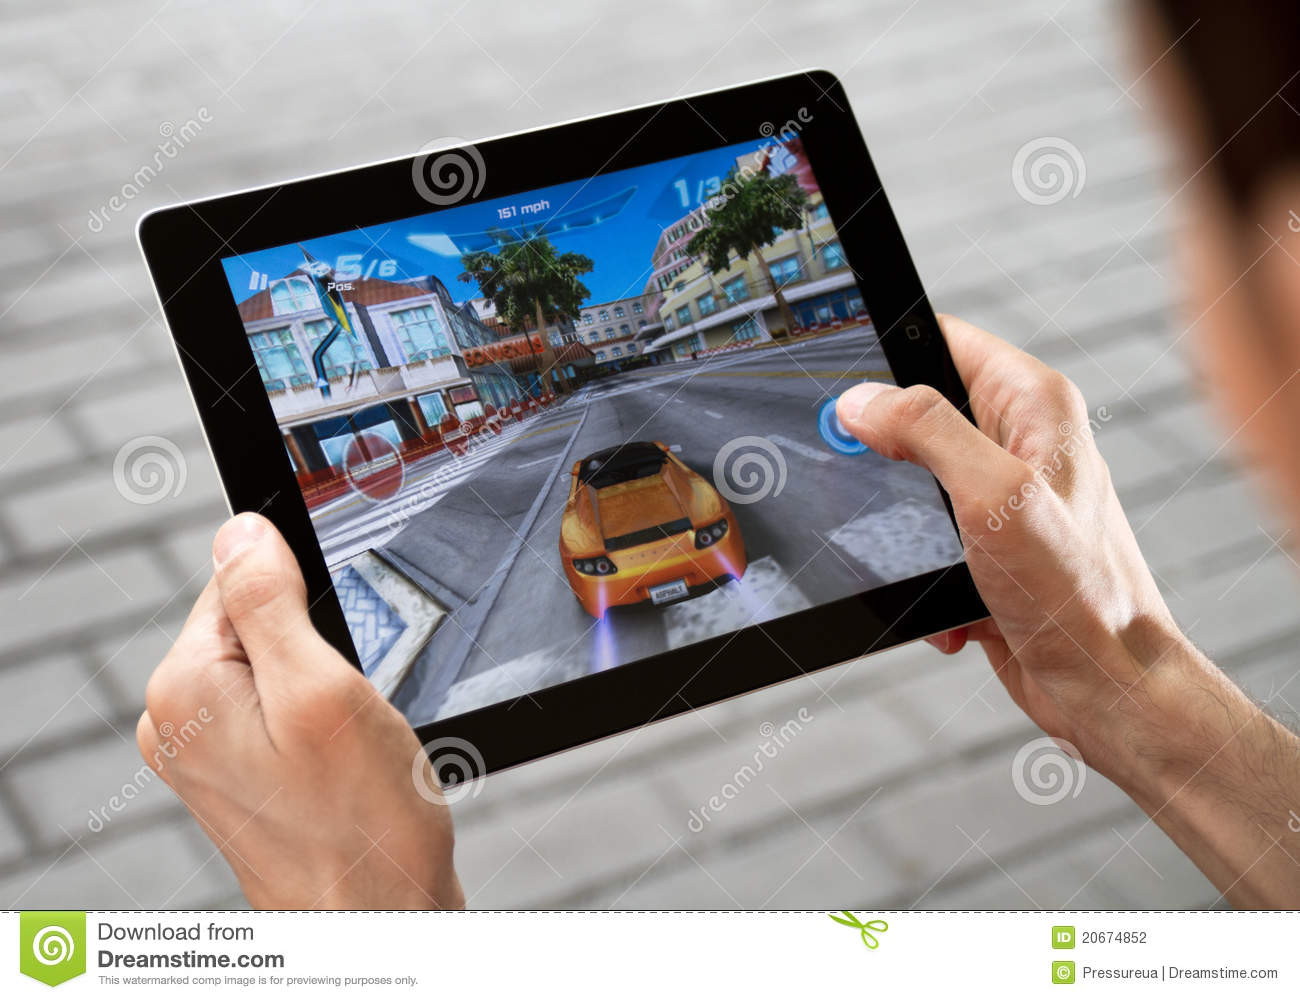 Play Game On Apple Ipad2 Editorial Photography - Image: 20674852